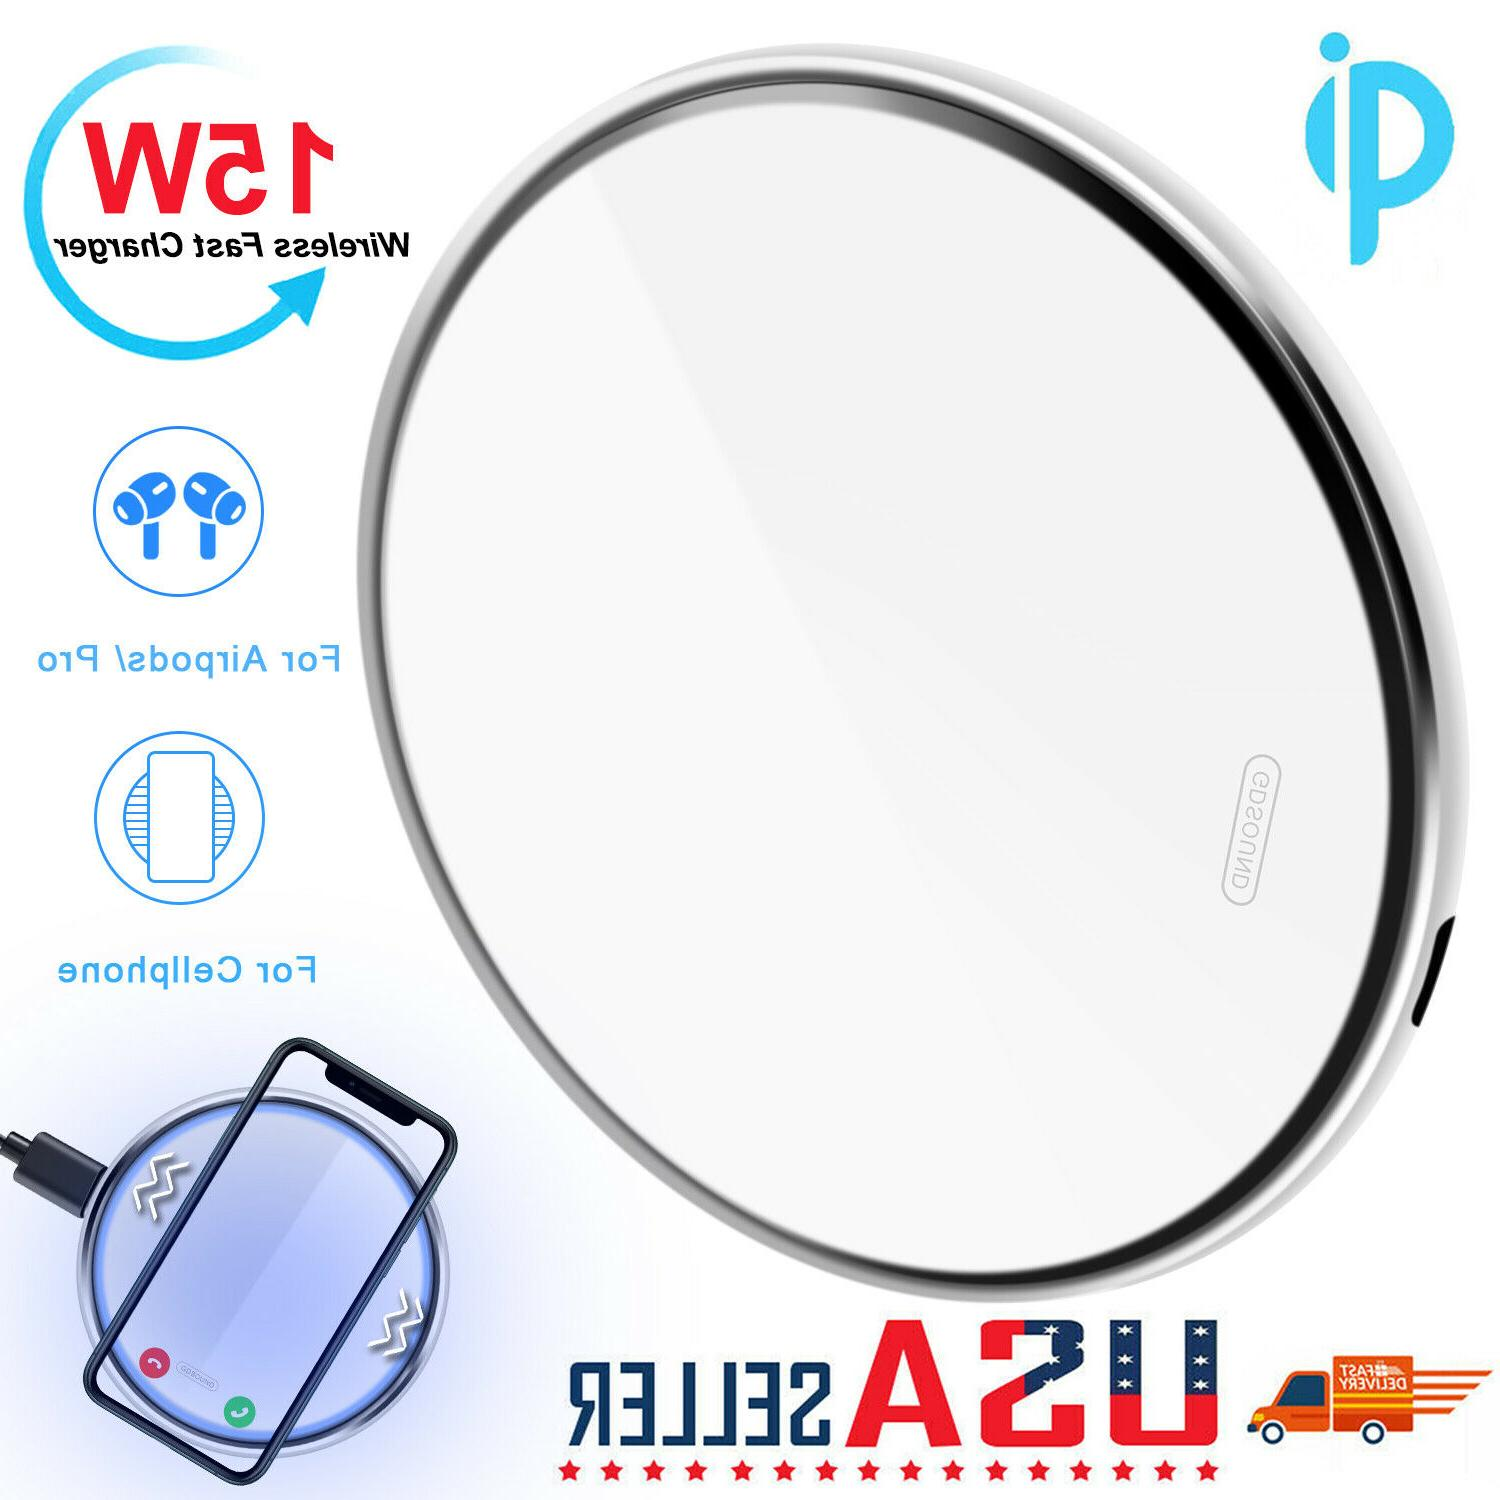 15w qi wireless fast charger charging pad